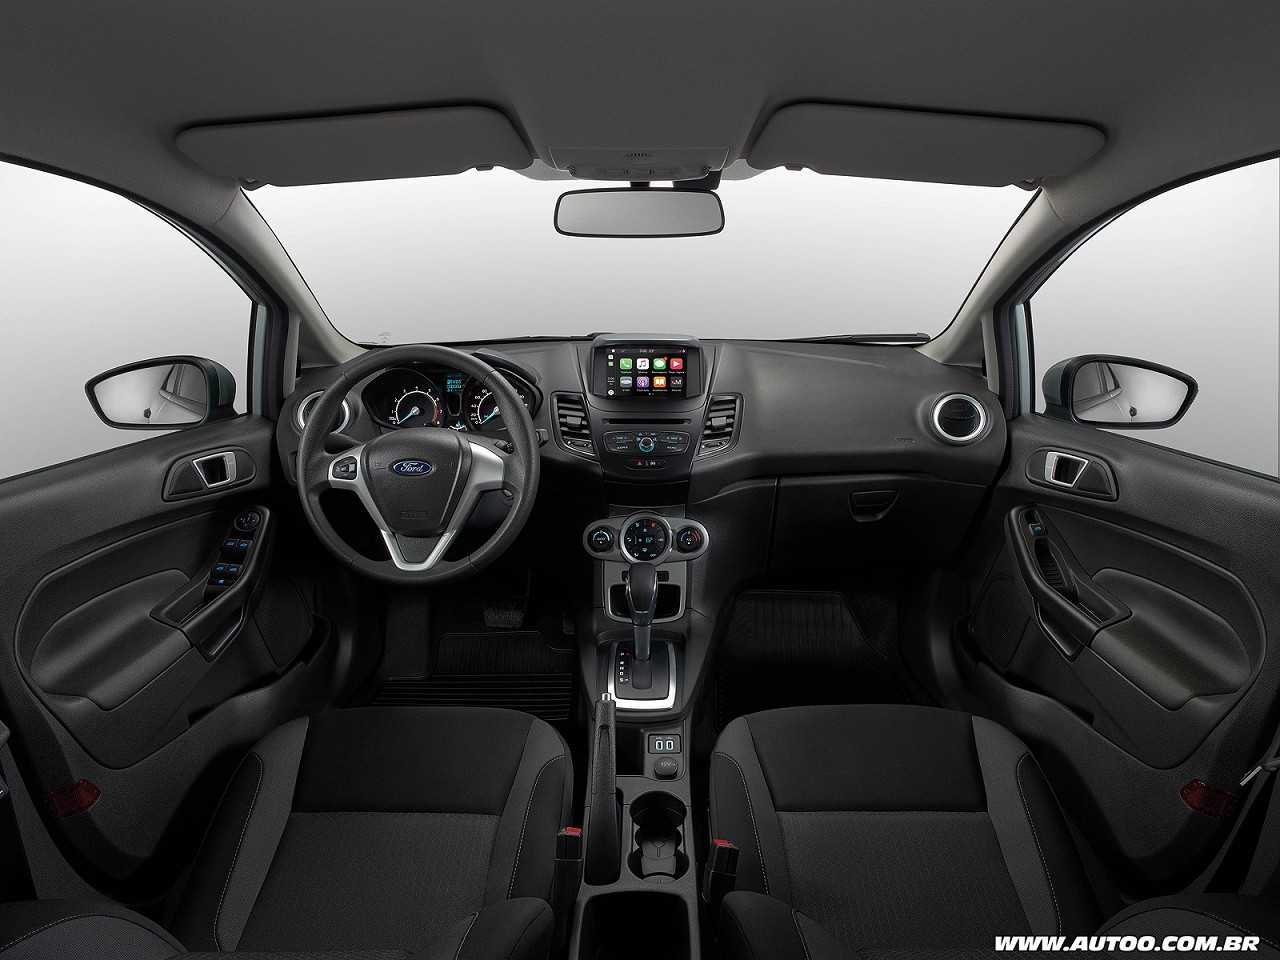 FordFiesta 2018 - painel